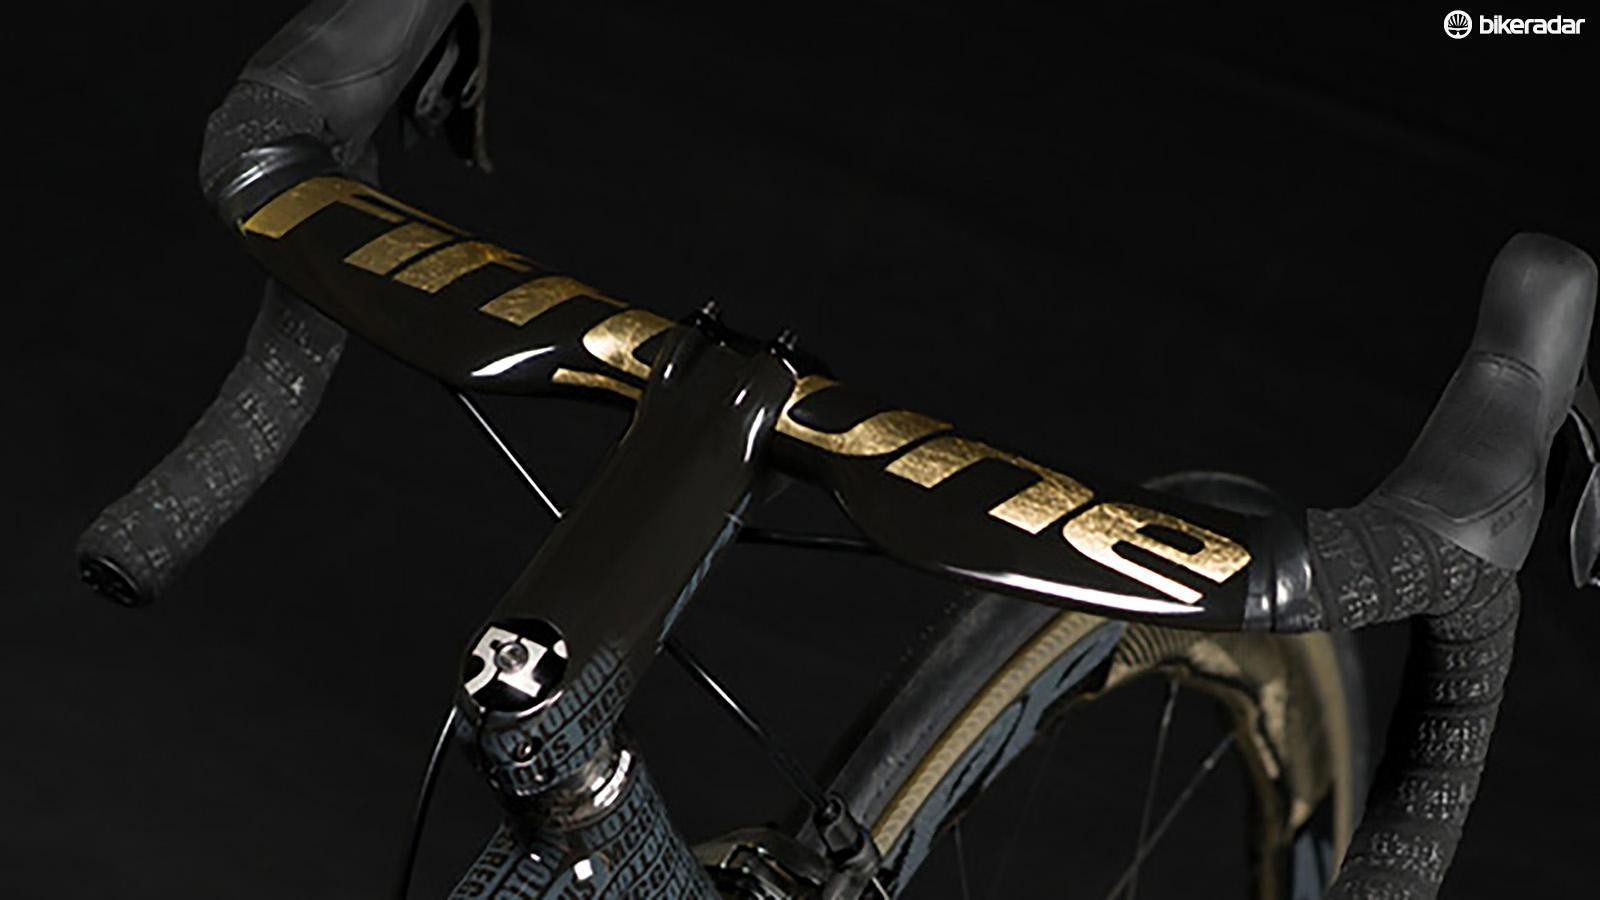 FiftyOne bikes offers fully custom carbon bikes from its Dublin HQ